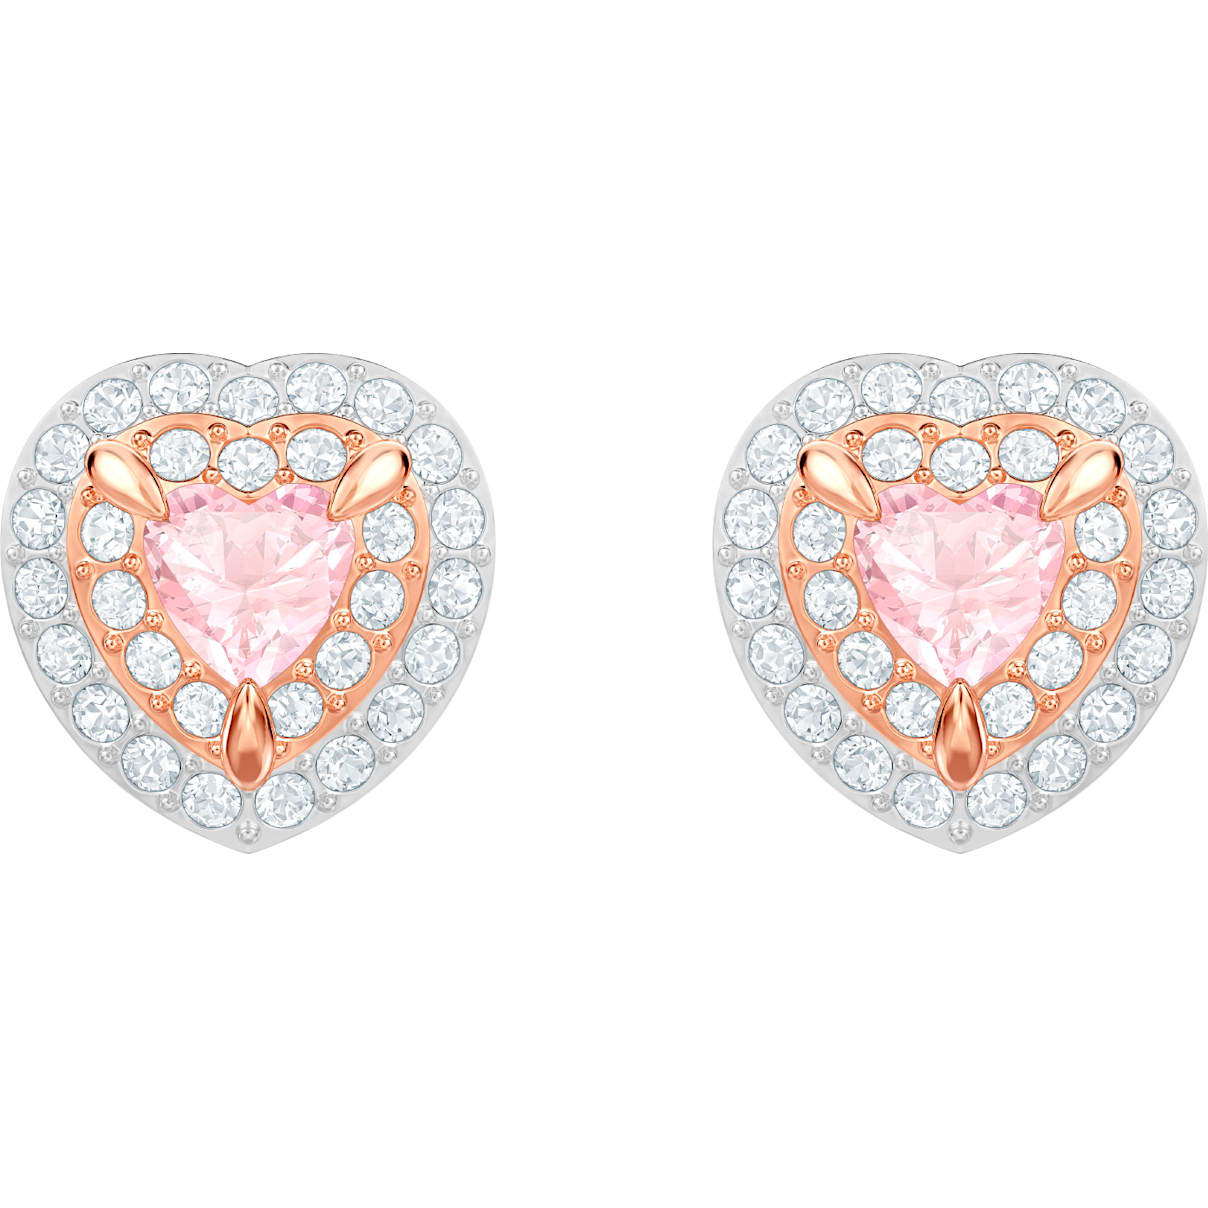 Swarovski One Stud Pierced Earrings, Multi-colored, Rose-gold tone plated